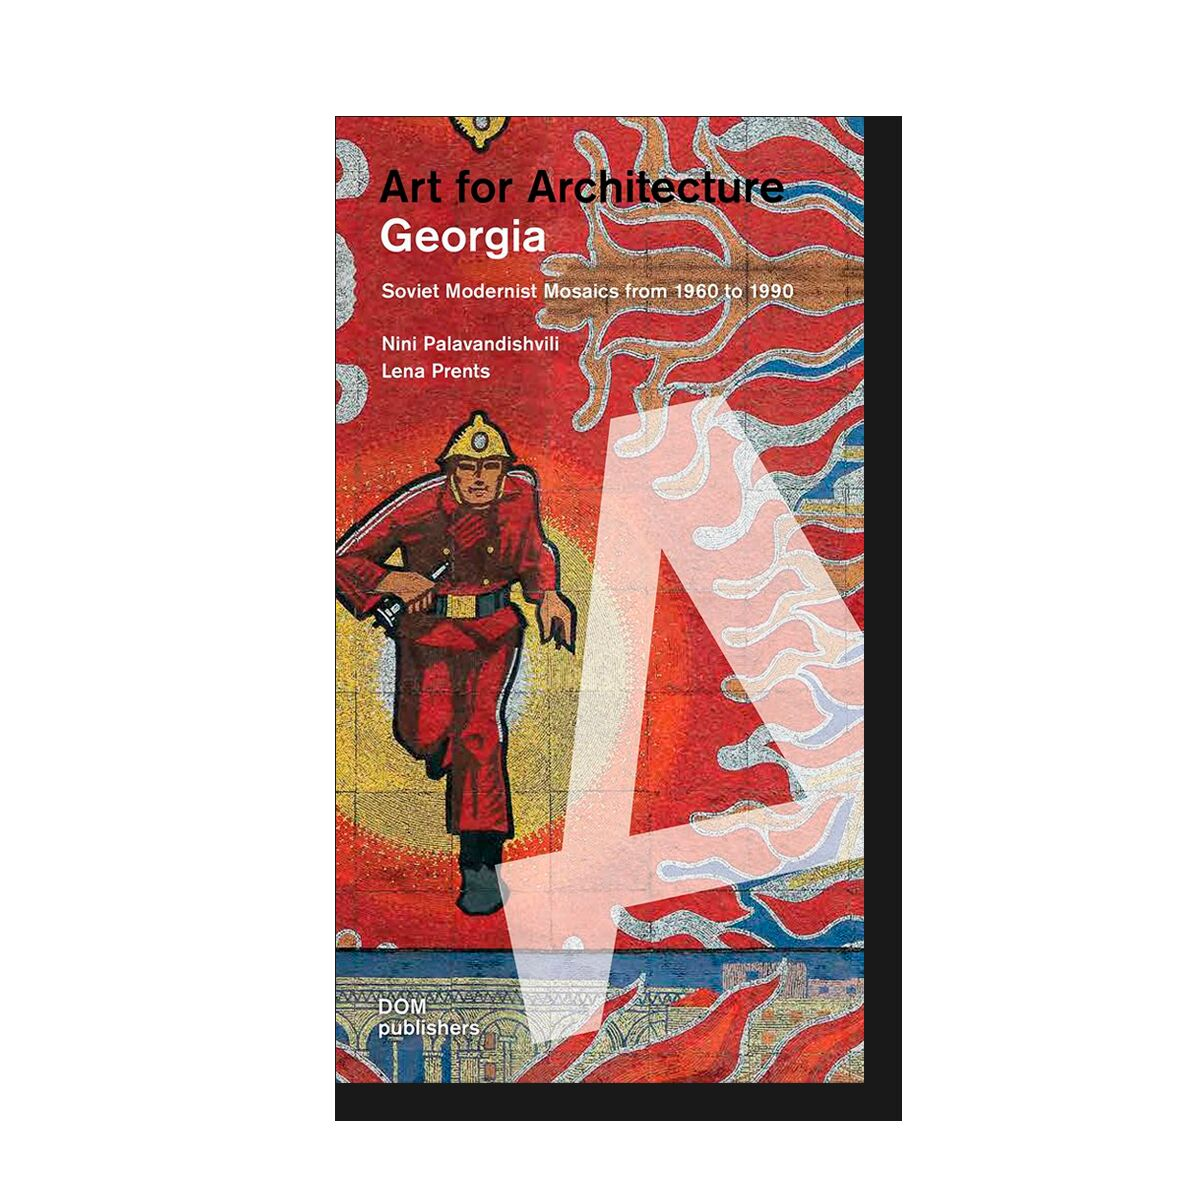 Georgia. Art for Architecture. Soviet Modernist Mosaics from 1960 to 1990